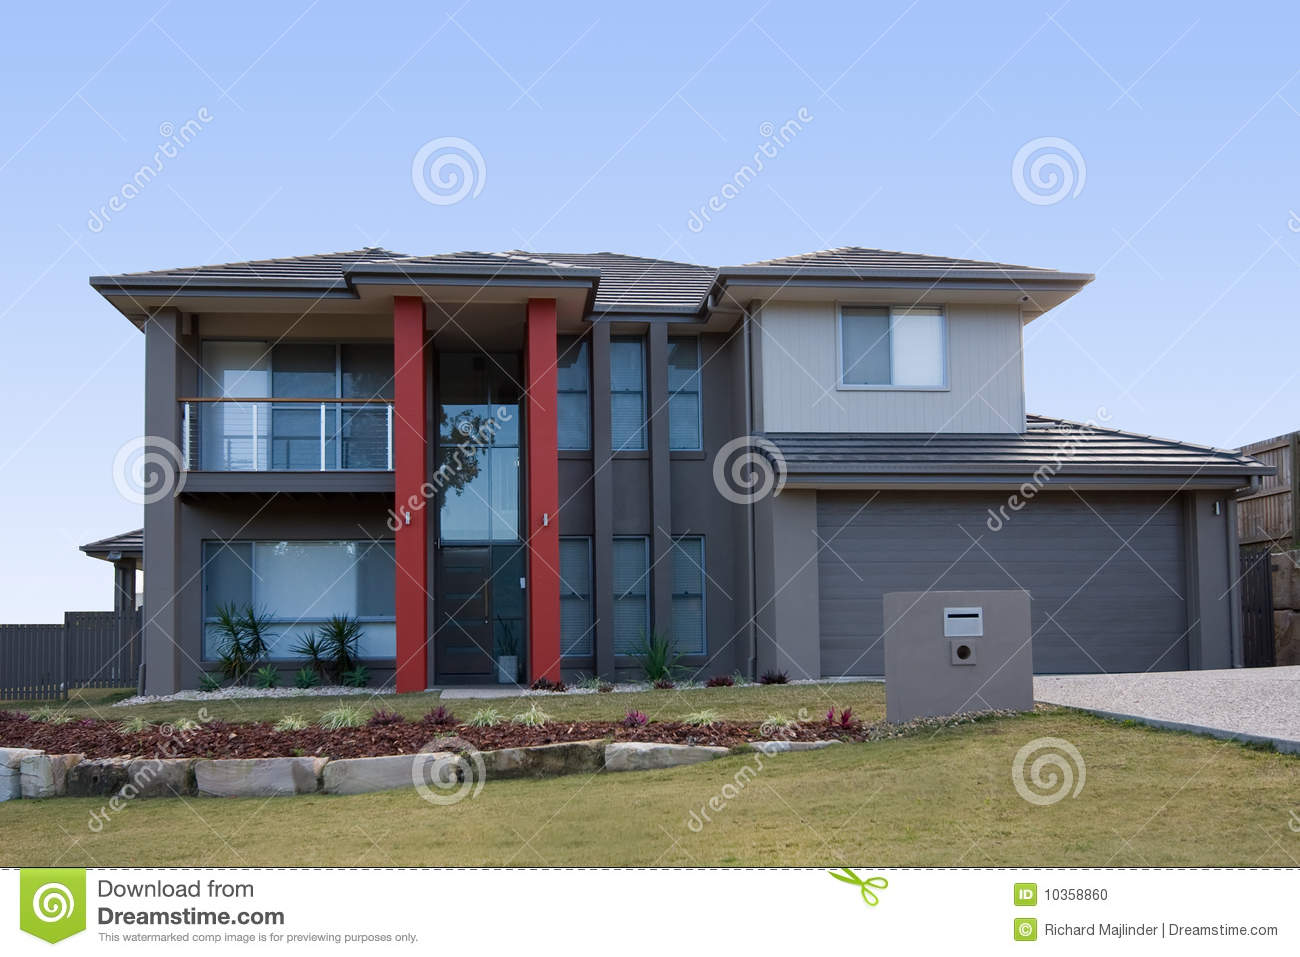 Maison Grise Moderne Avec Les Piliers Rouges Photo stock ...